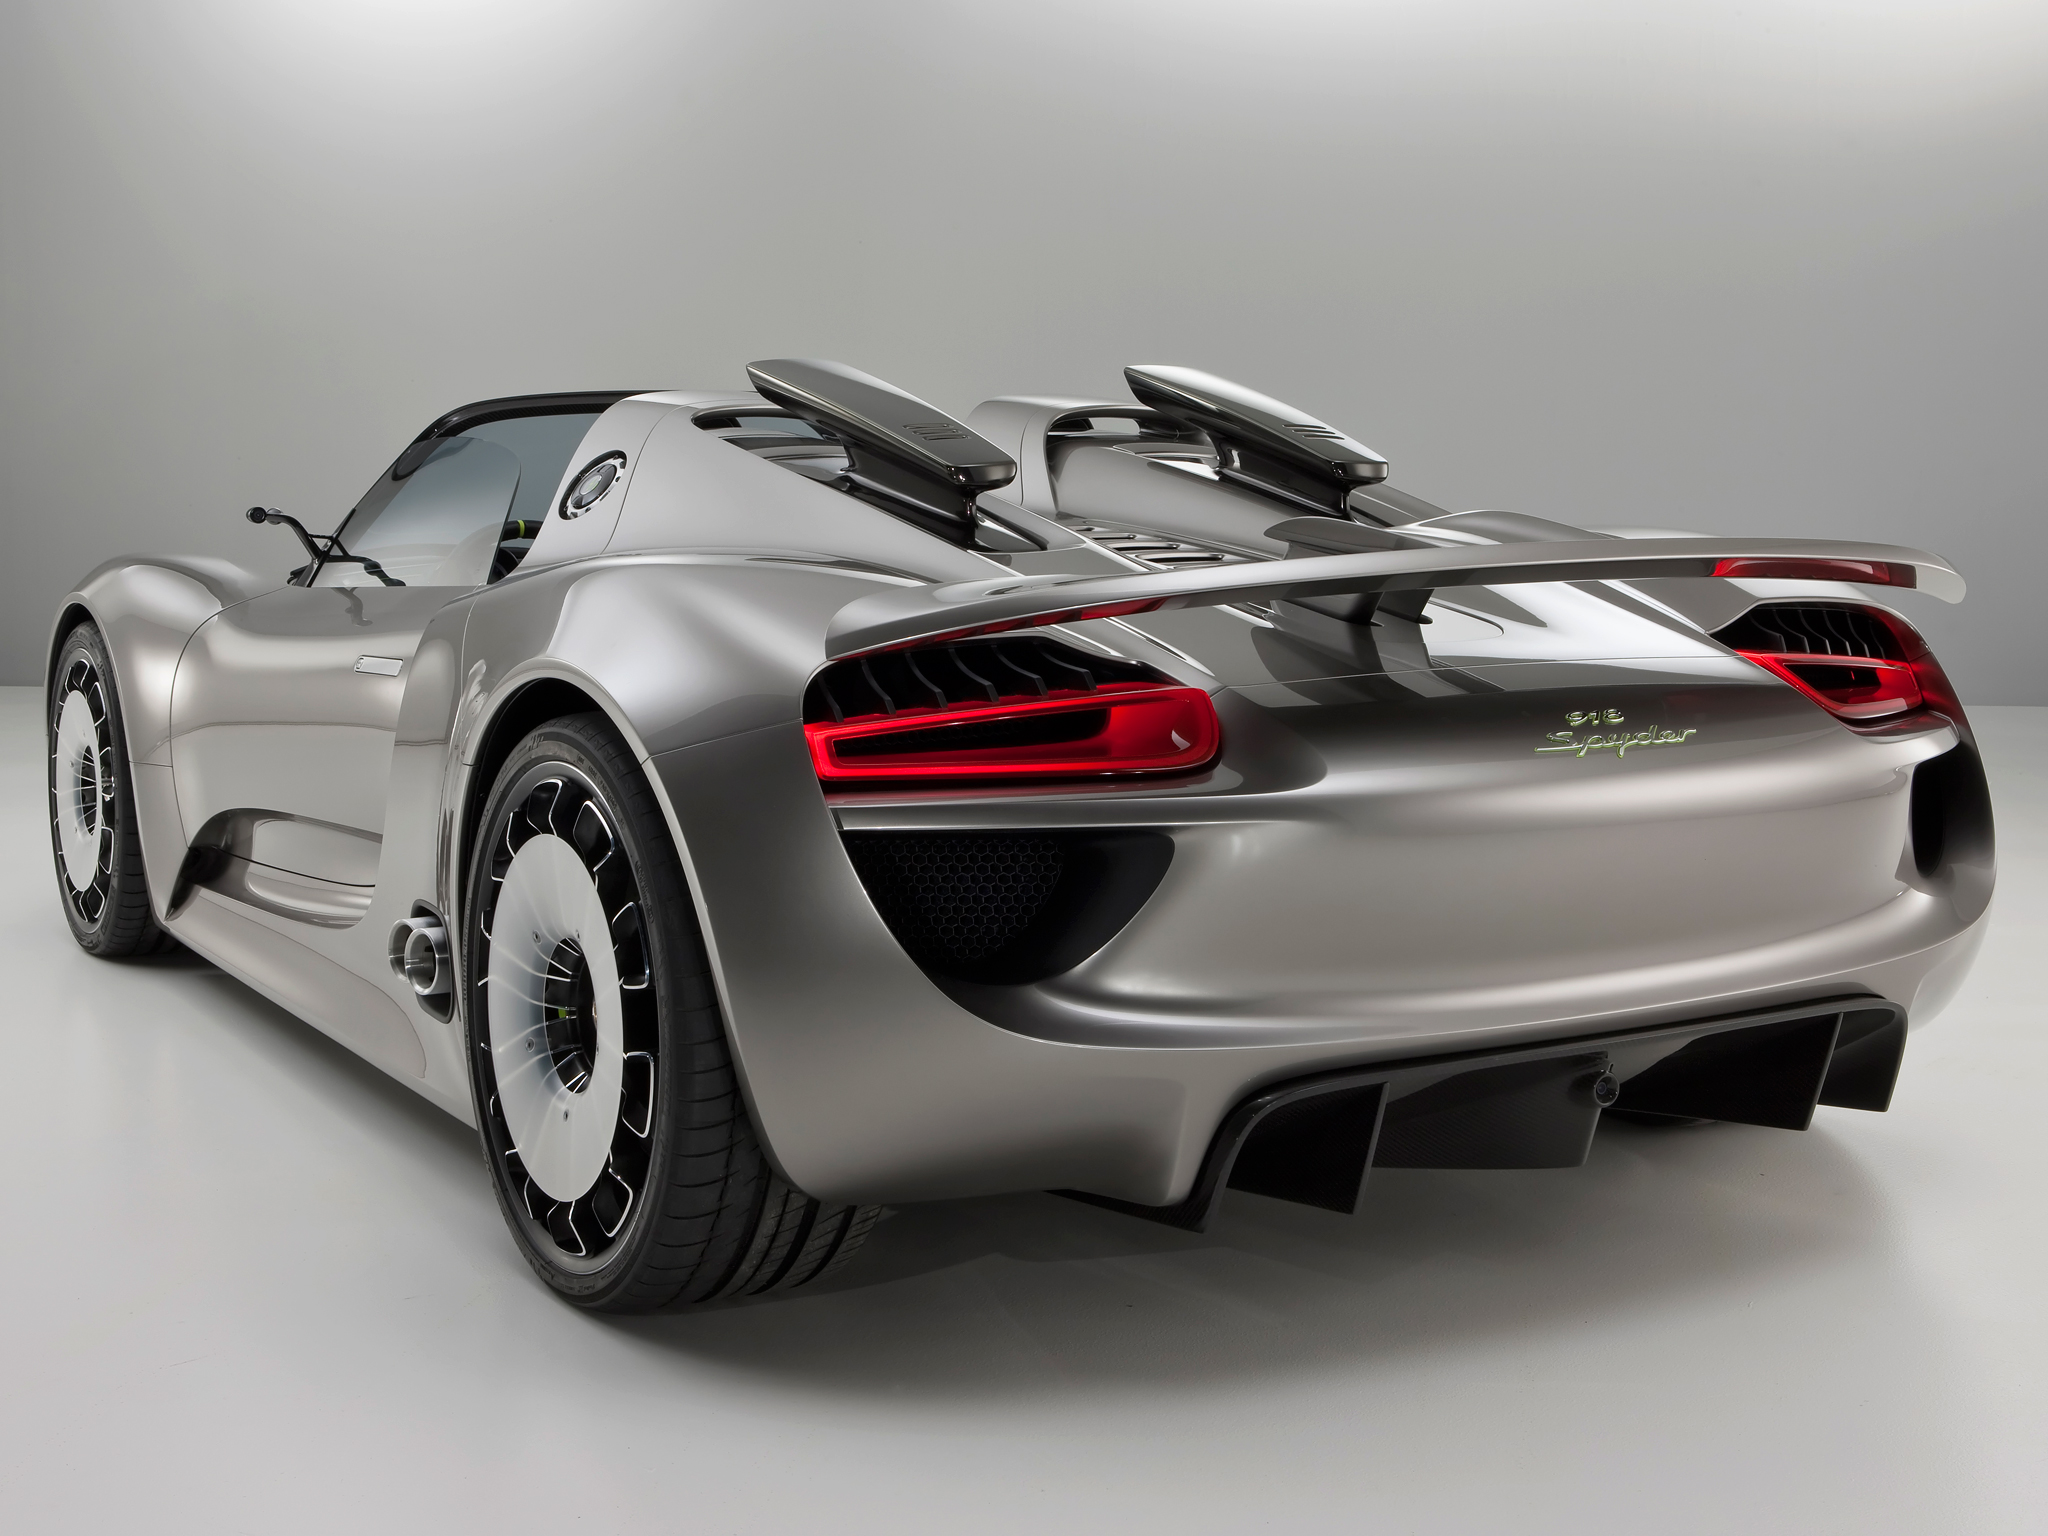 2010 porsche 918 spyder concept supercar supercars g wallpaper 2048x1536 131597 wallpaperup. Black Bedroom Furniture Sets. Home Design Ideas